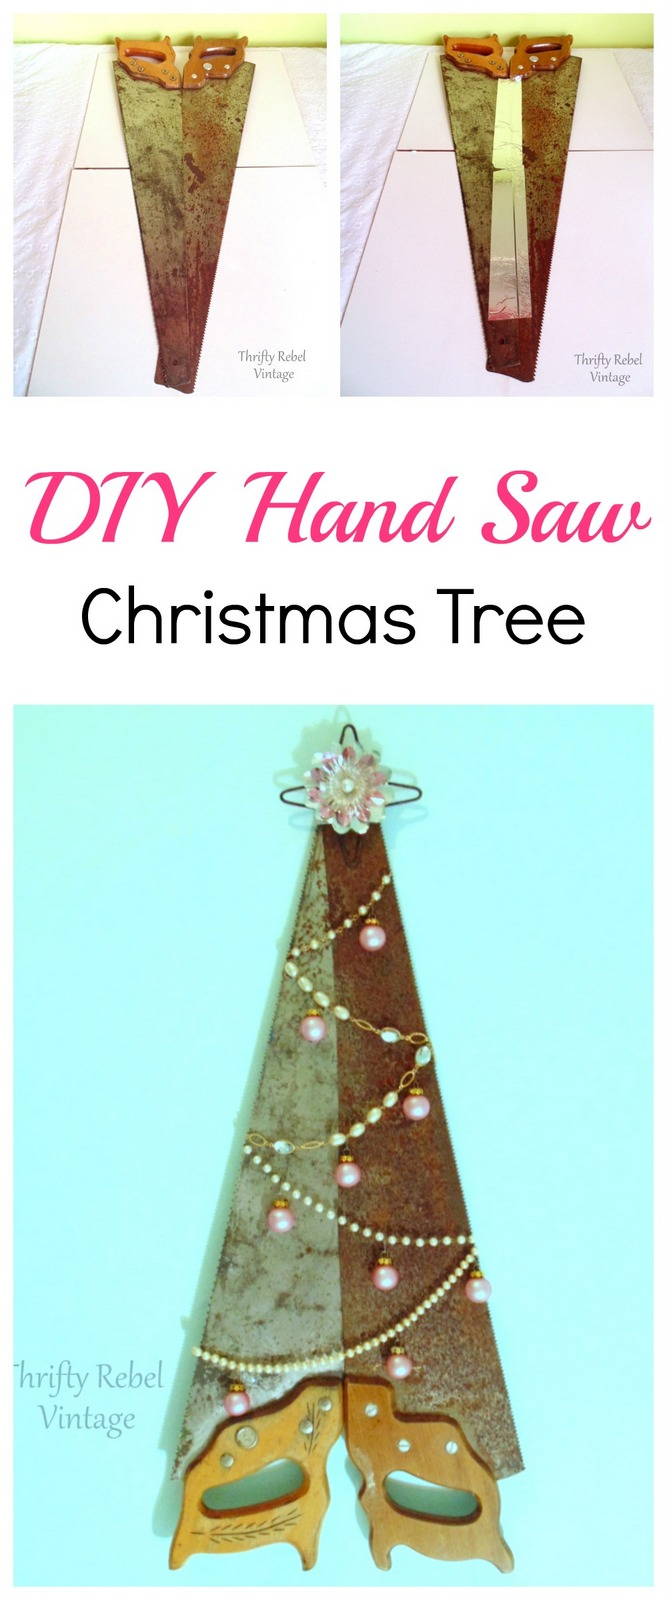 DIY Repurposed Hand Saw Wall Christmas Tree